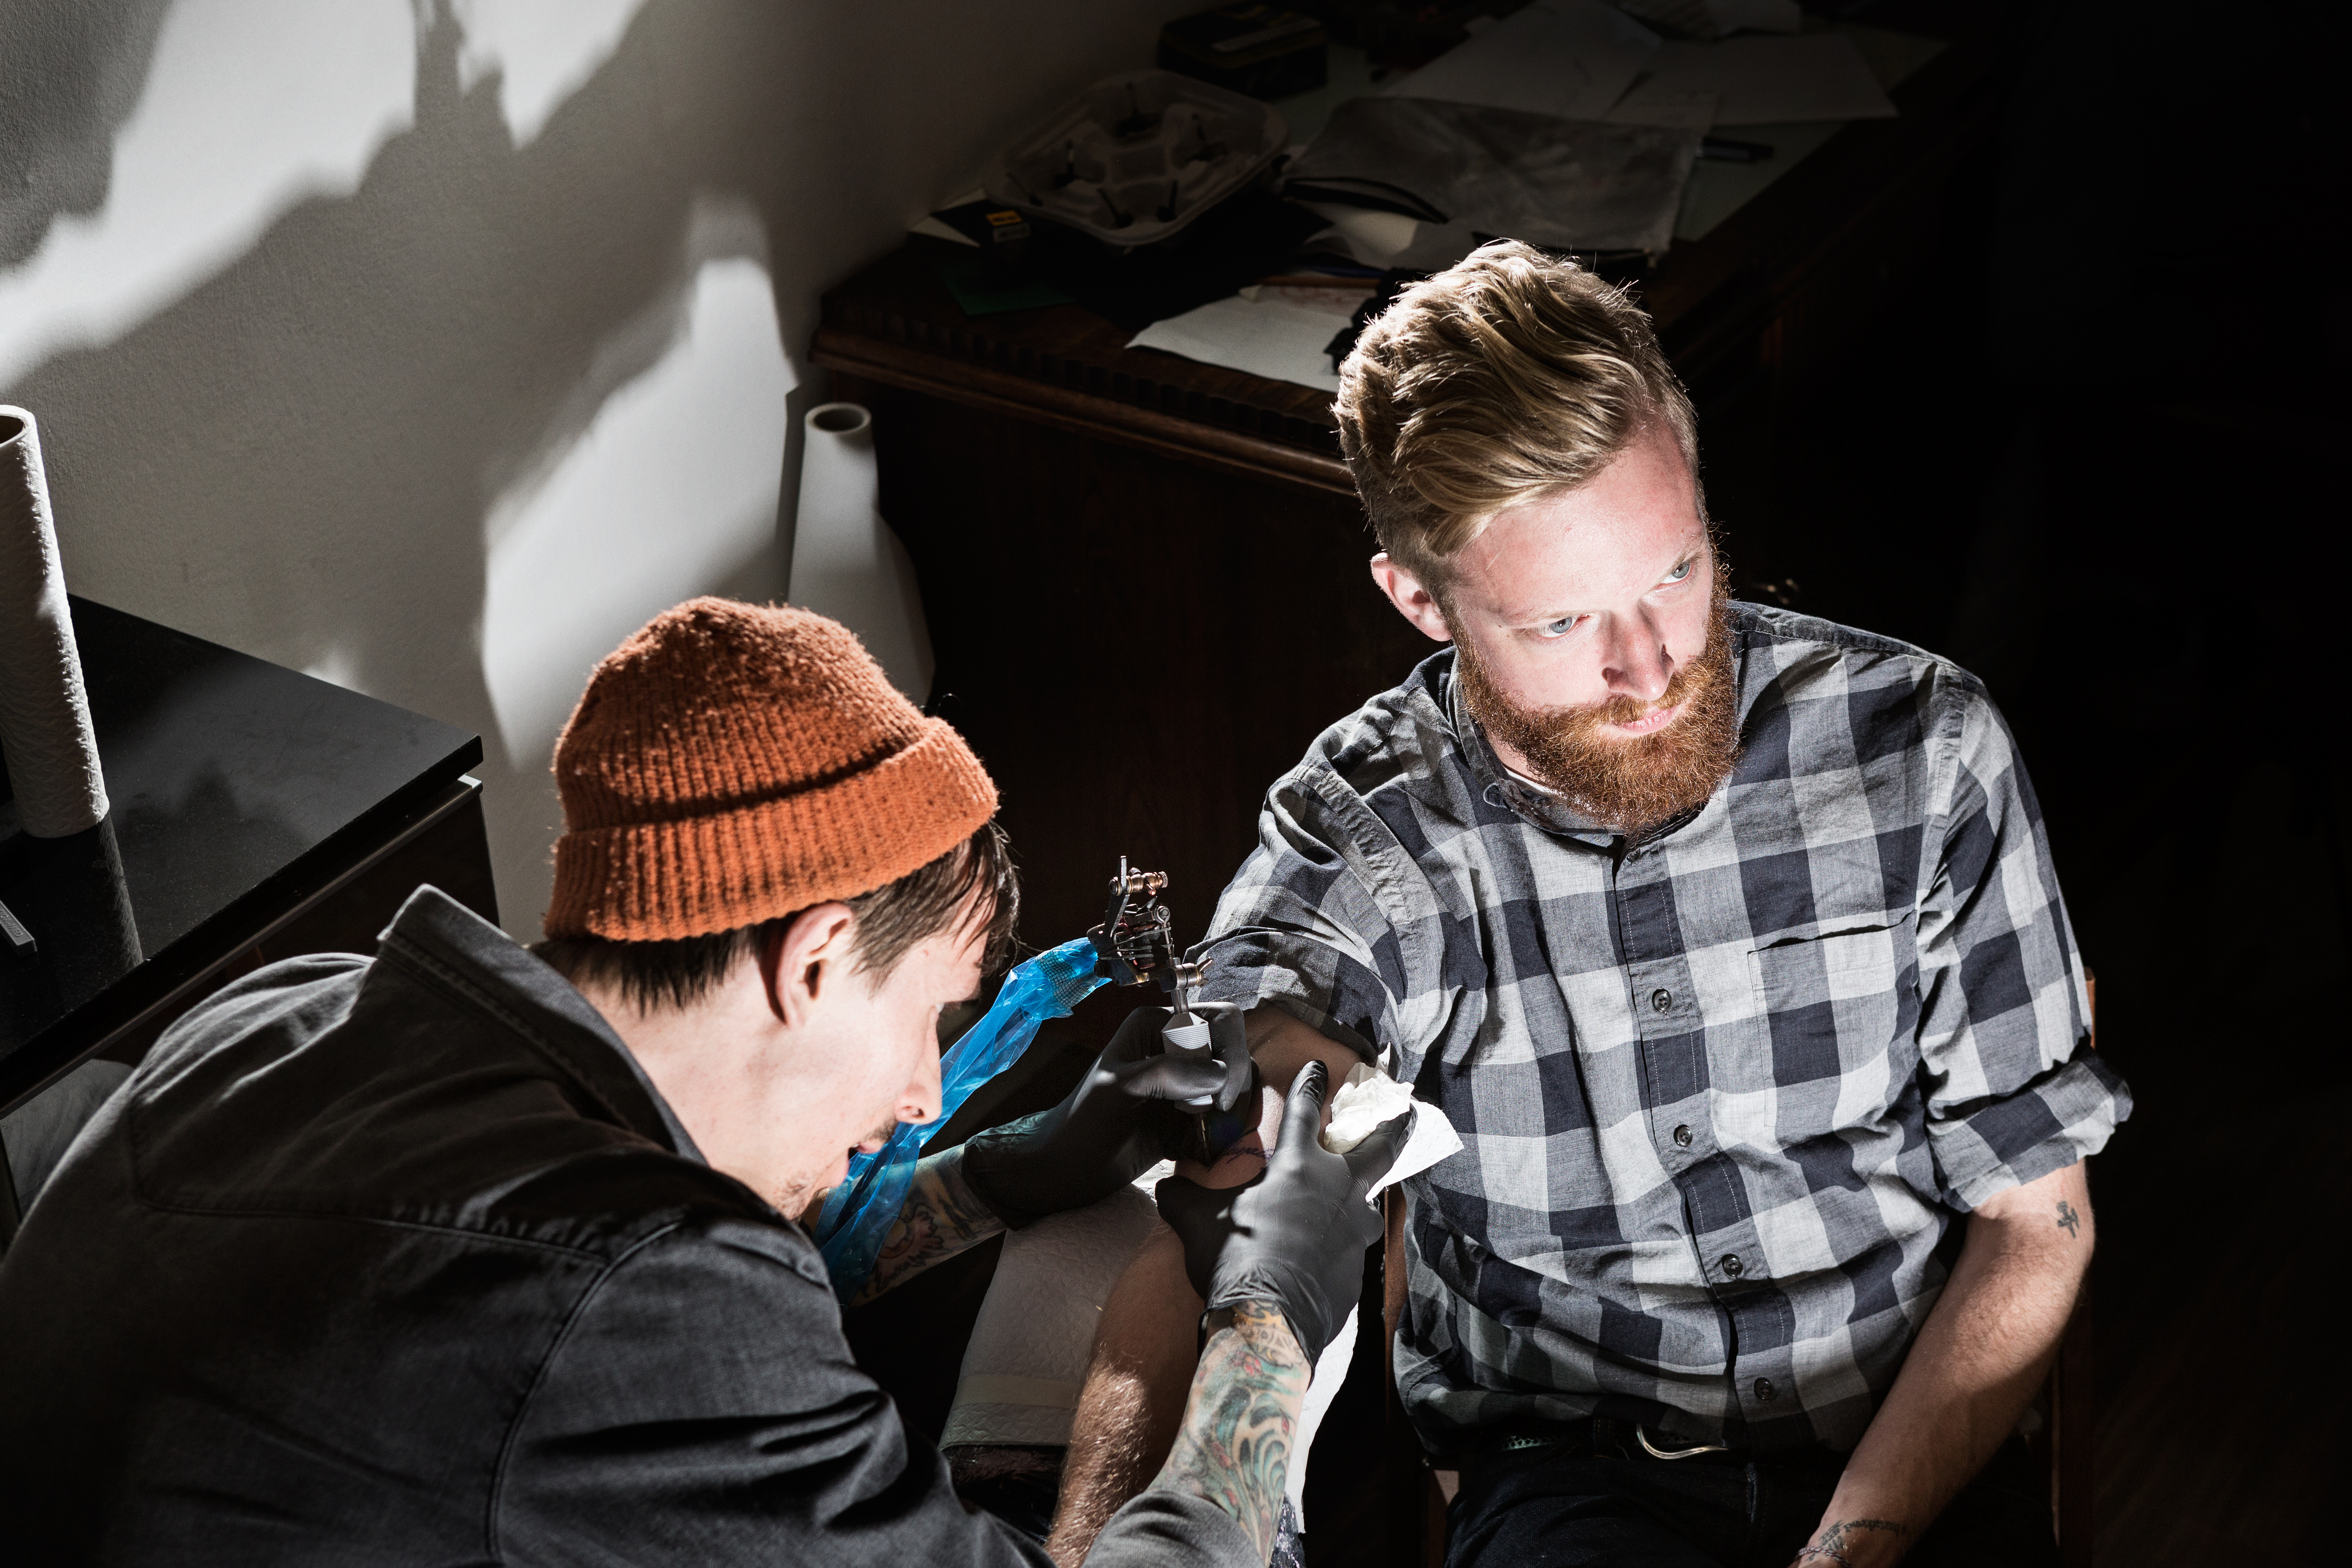 Photo Of The Day: Tattoo by Moritz Schmid